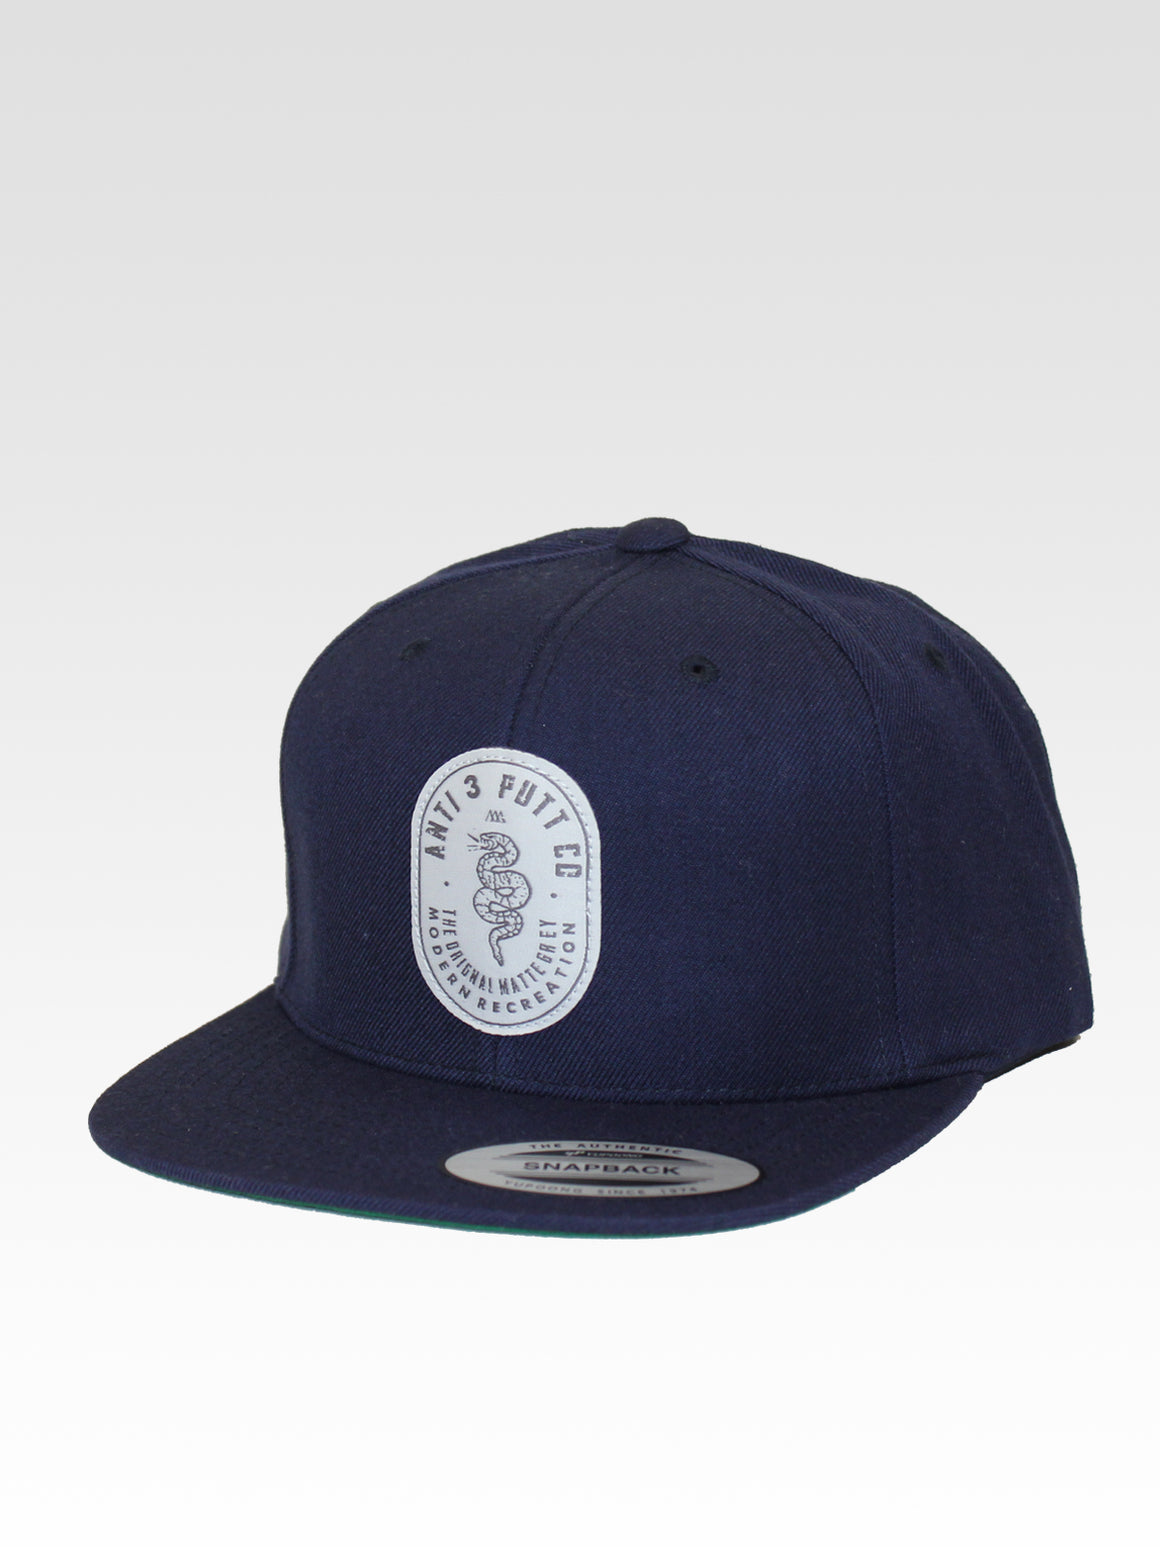 Anti 3 Putt Snapback - Navy (White / Grey)